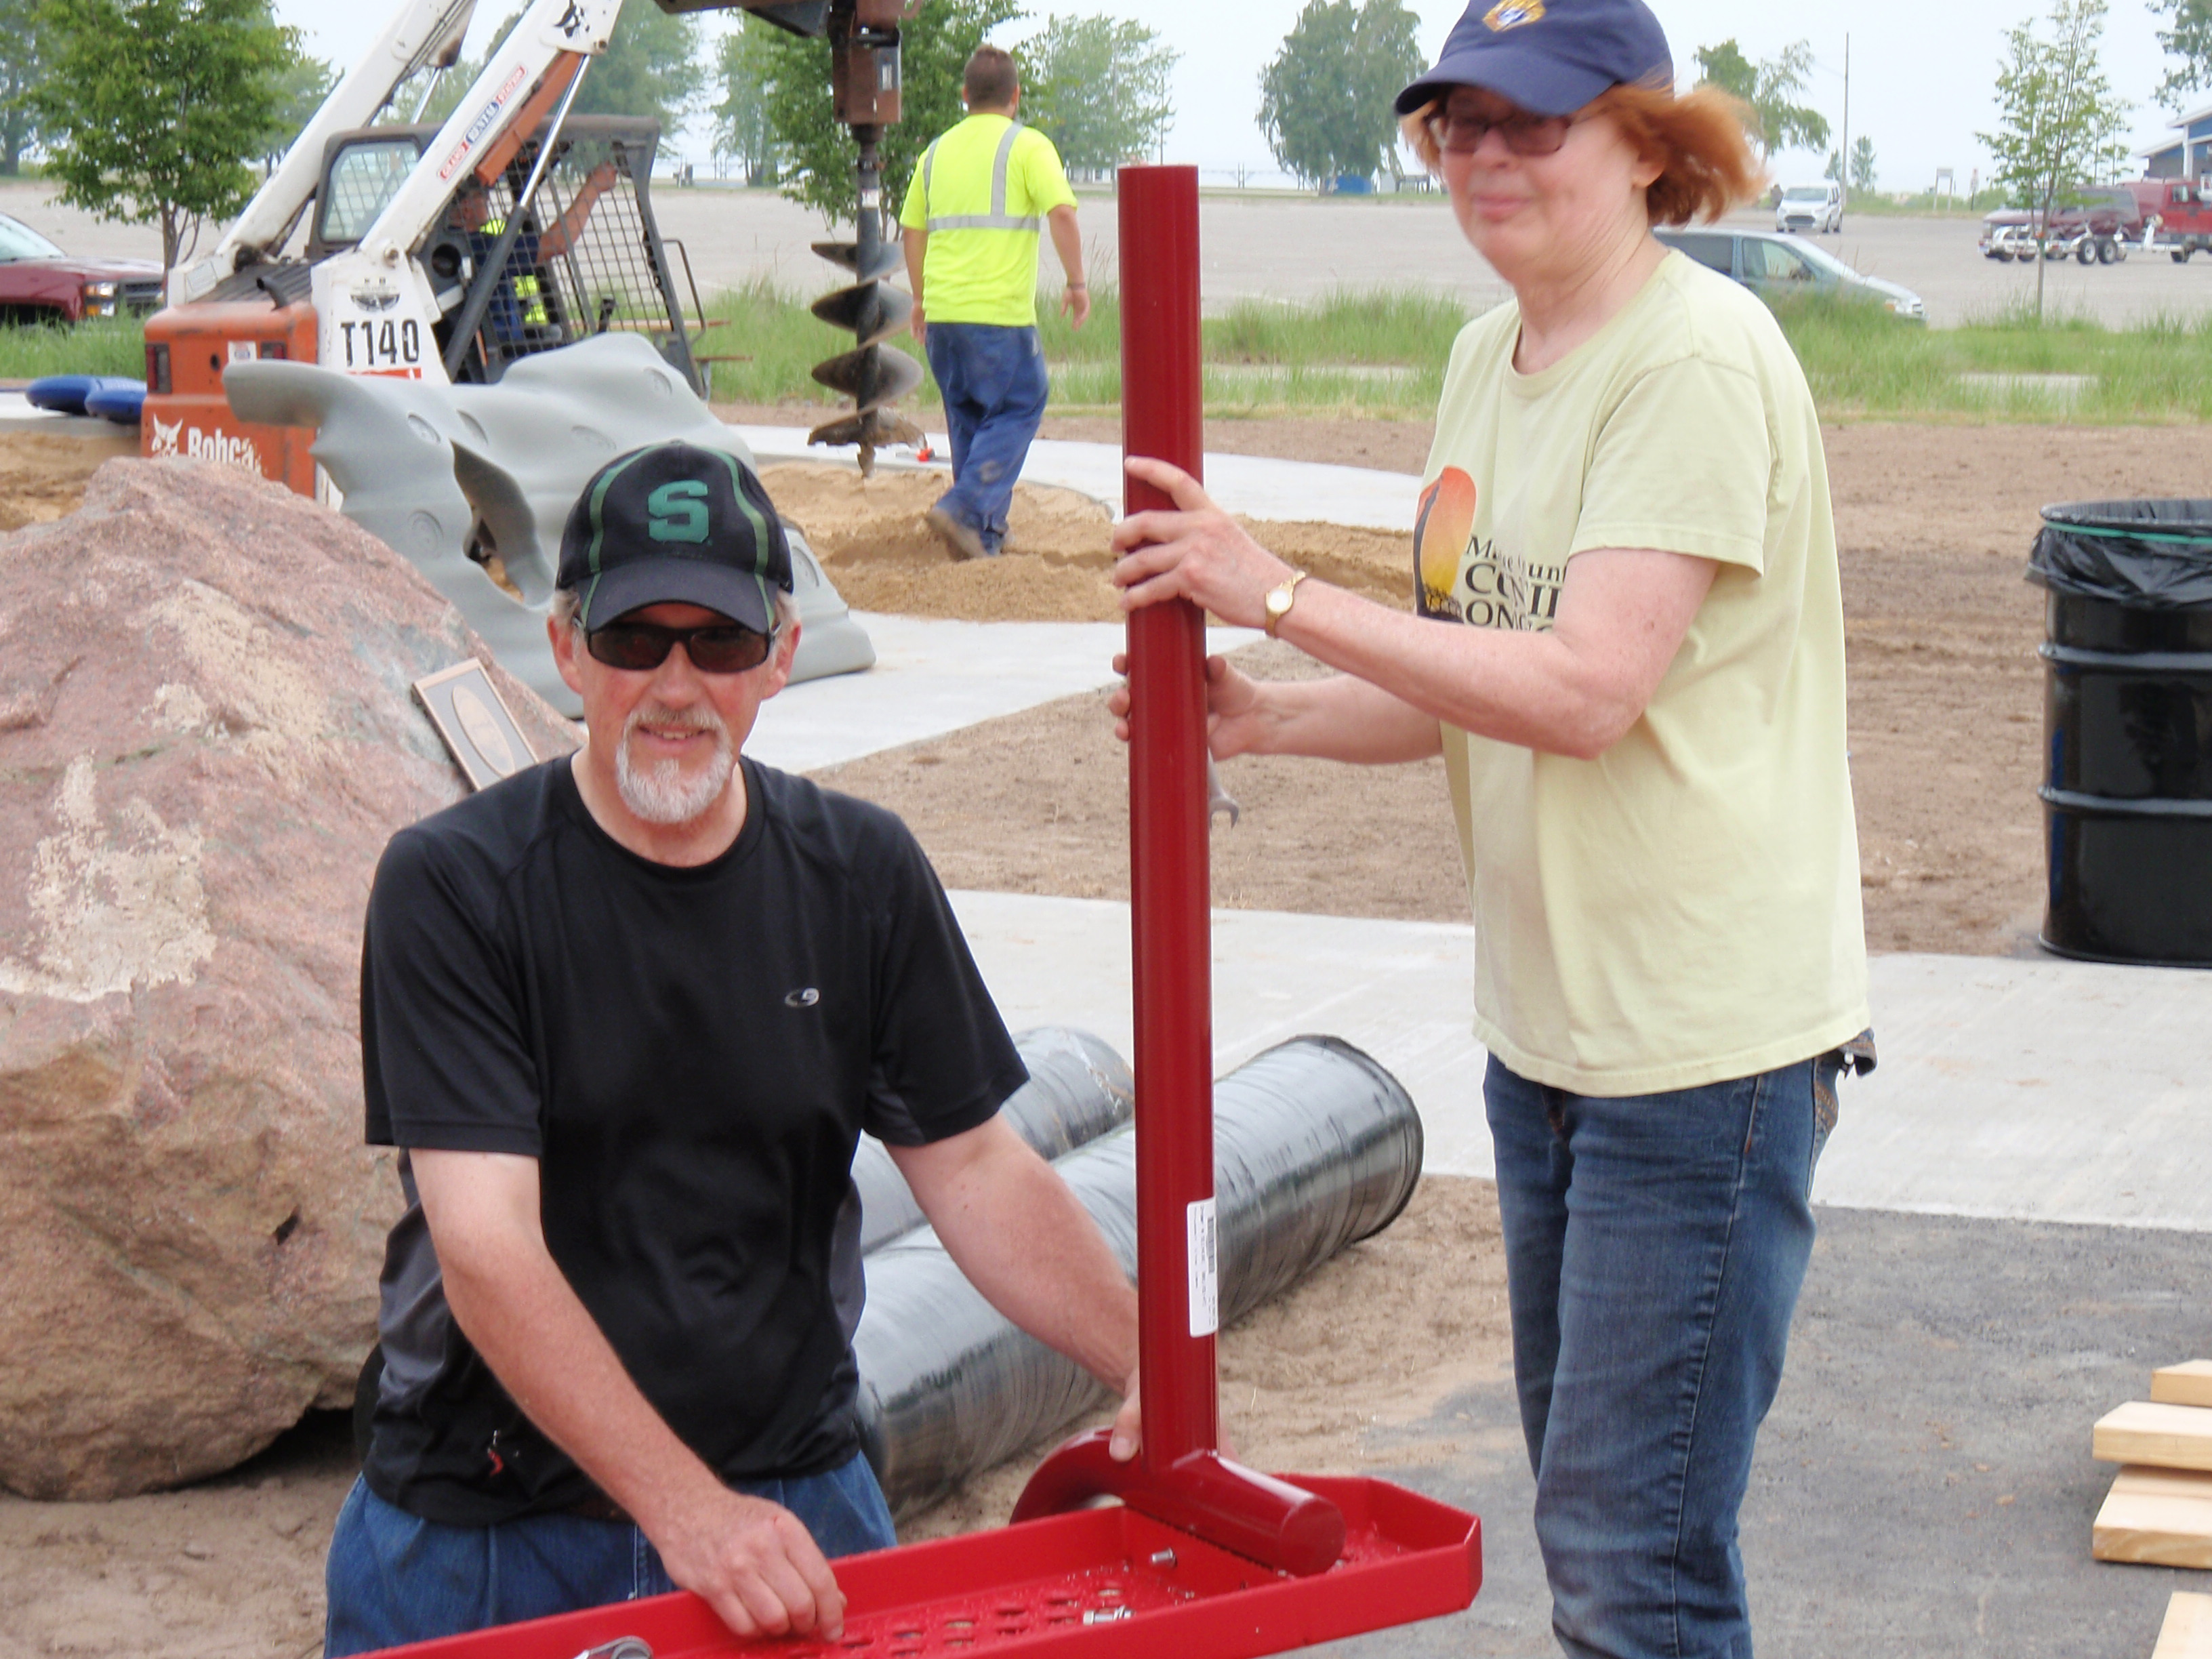 Volunteers begin constructing playground equipment and holes are being drilled for the community build of Rocket Park